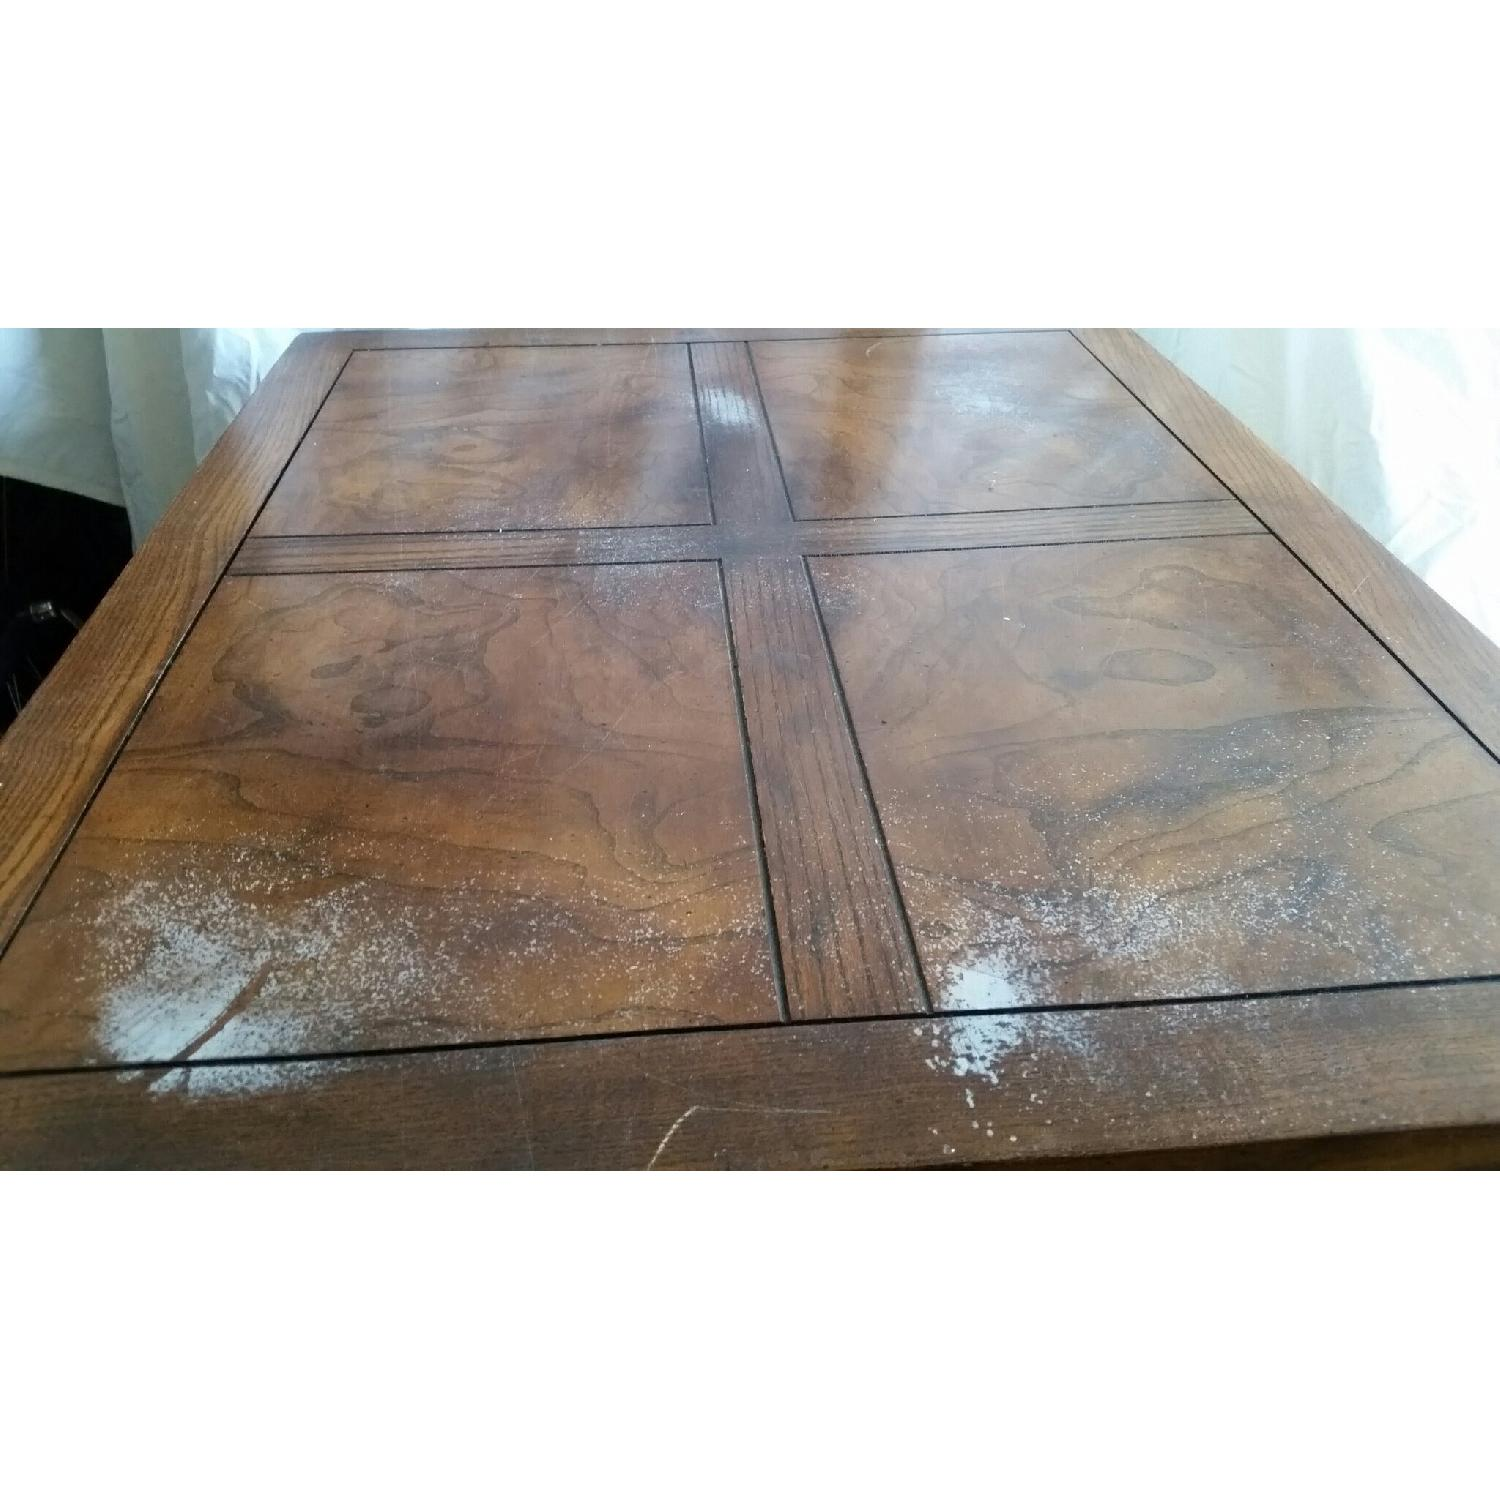 Antique Table w/ Drawer - image-3